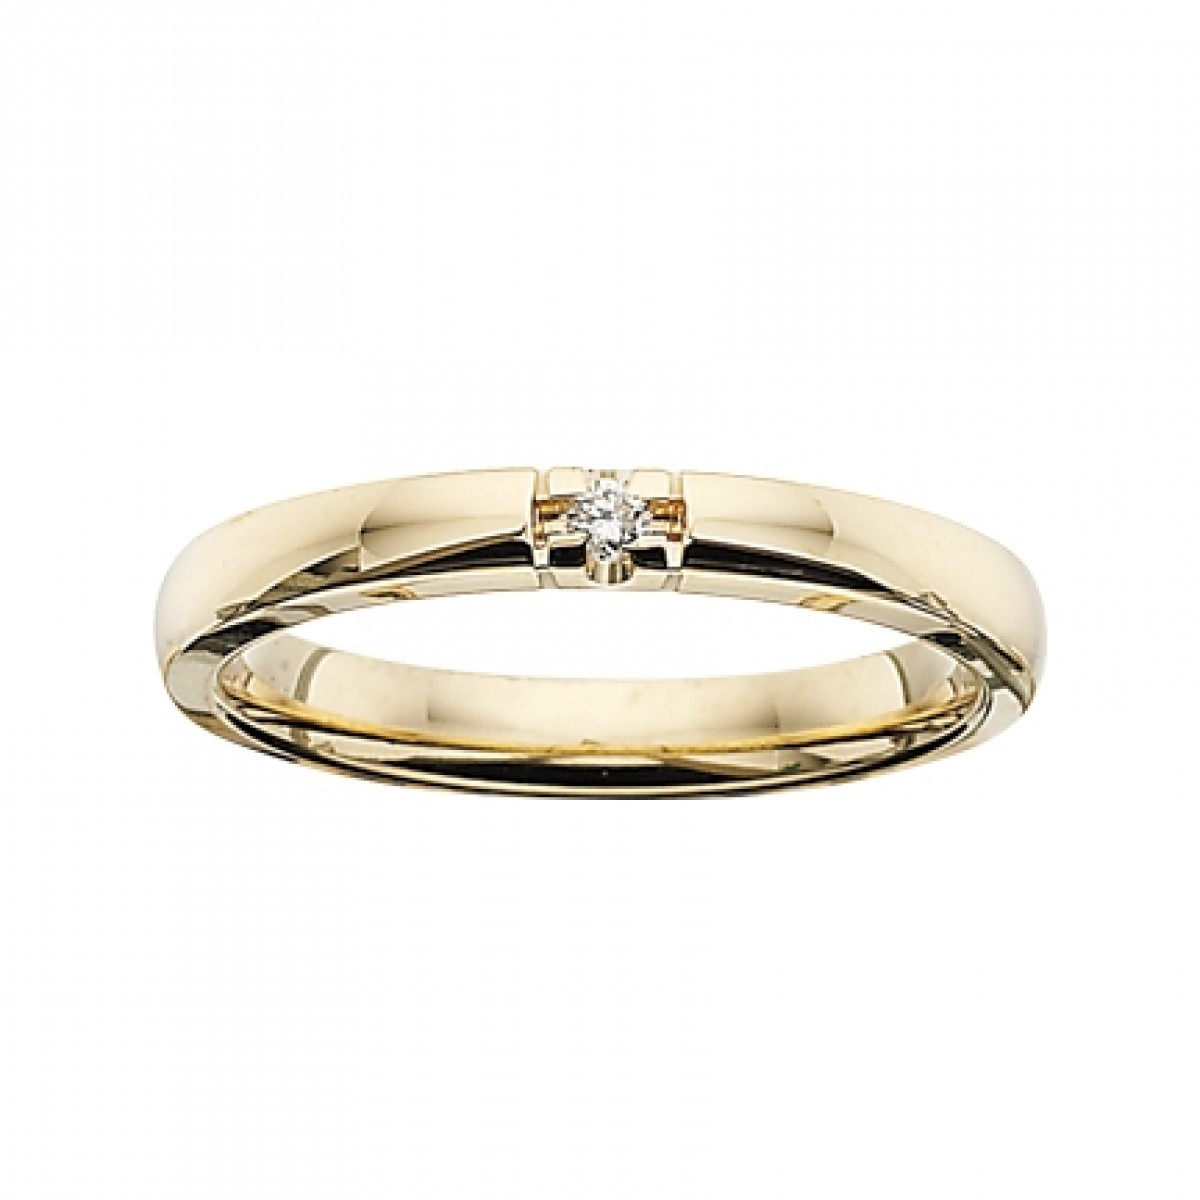 GRACE alliancering 14 karat guld med 1 x 0,03 ct W/SI brillant-30